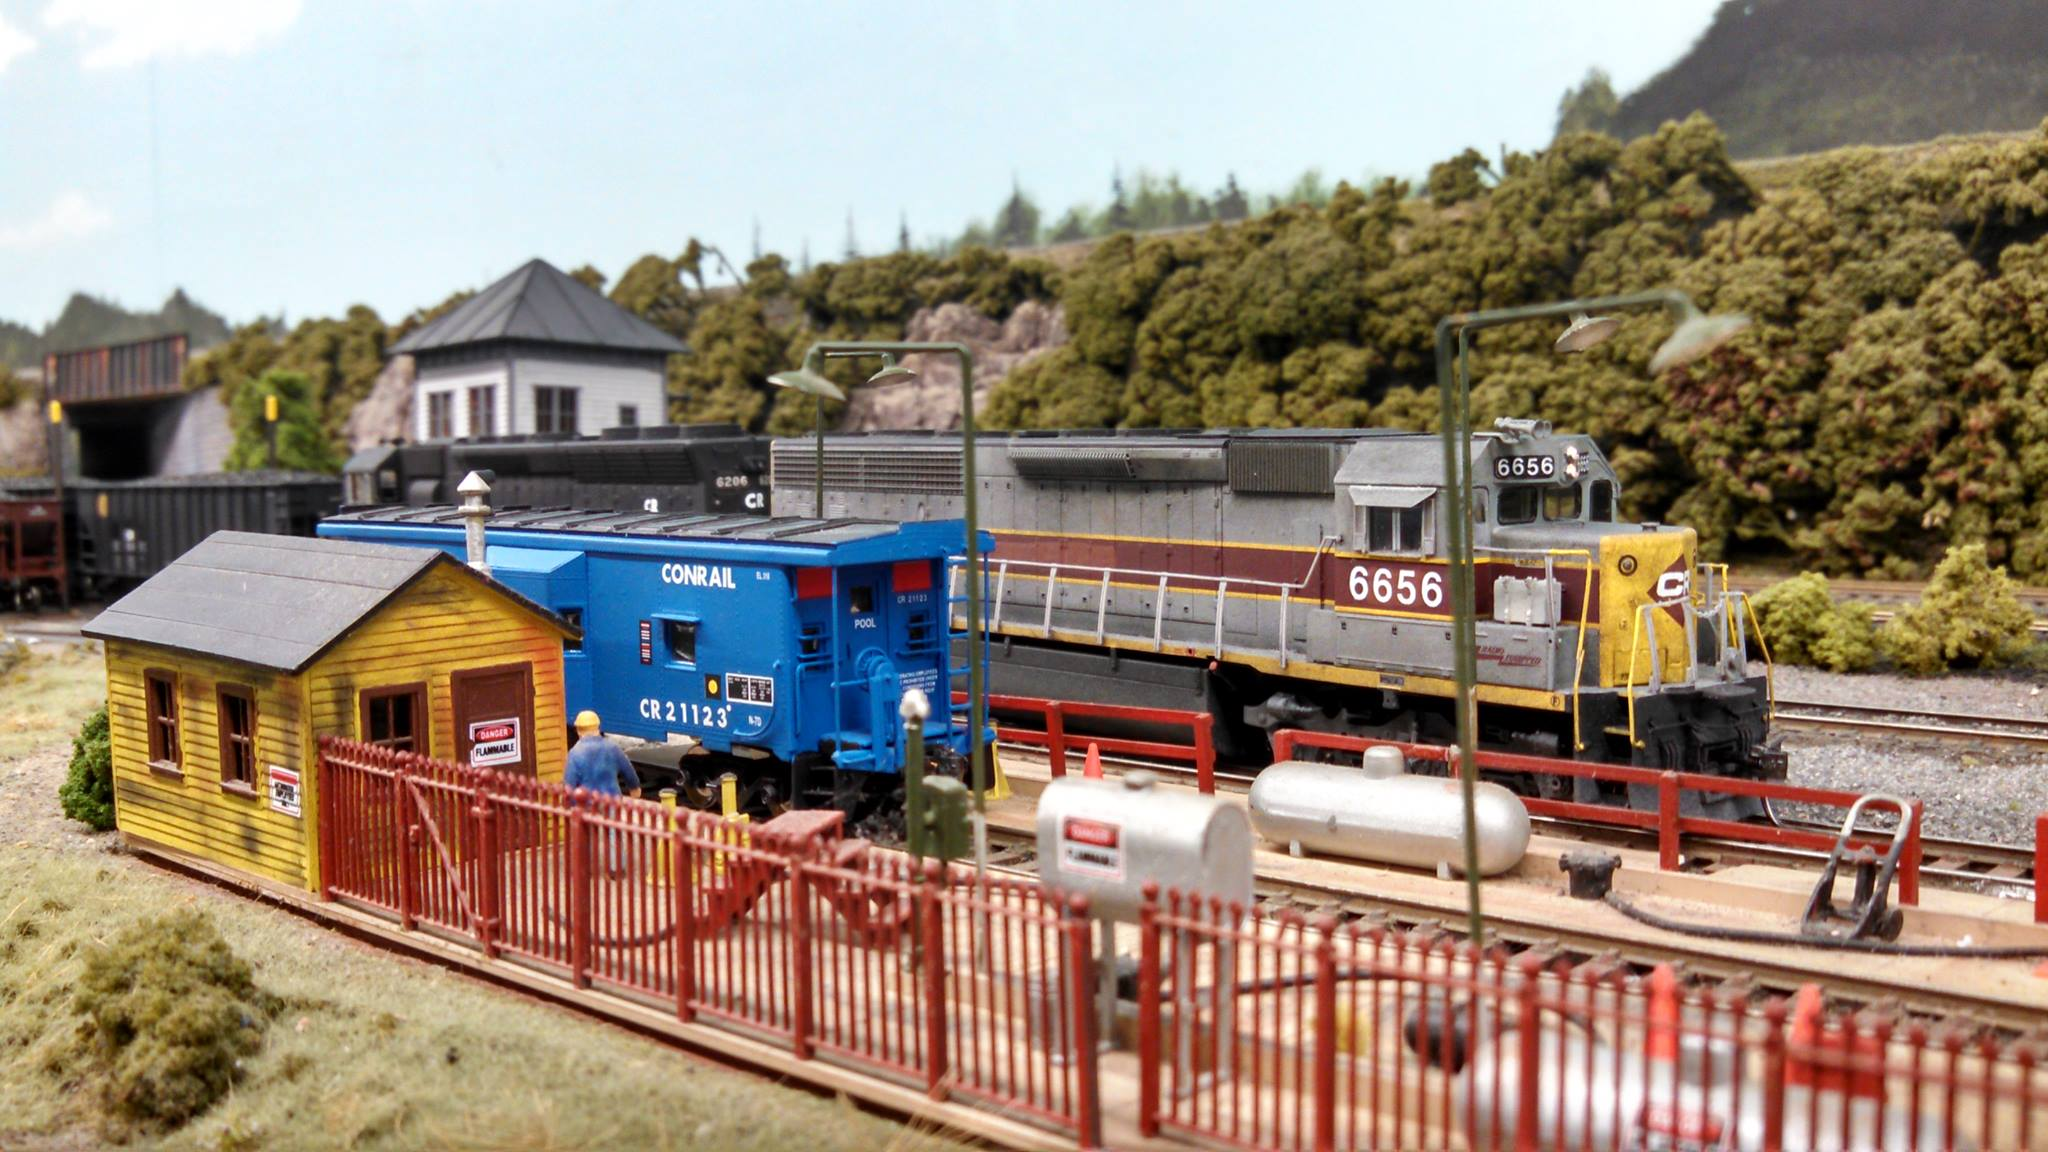 The holidays aren't complete without a toy train display.